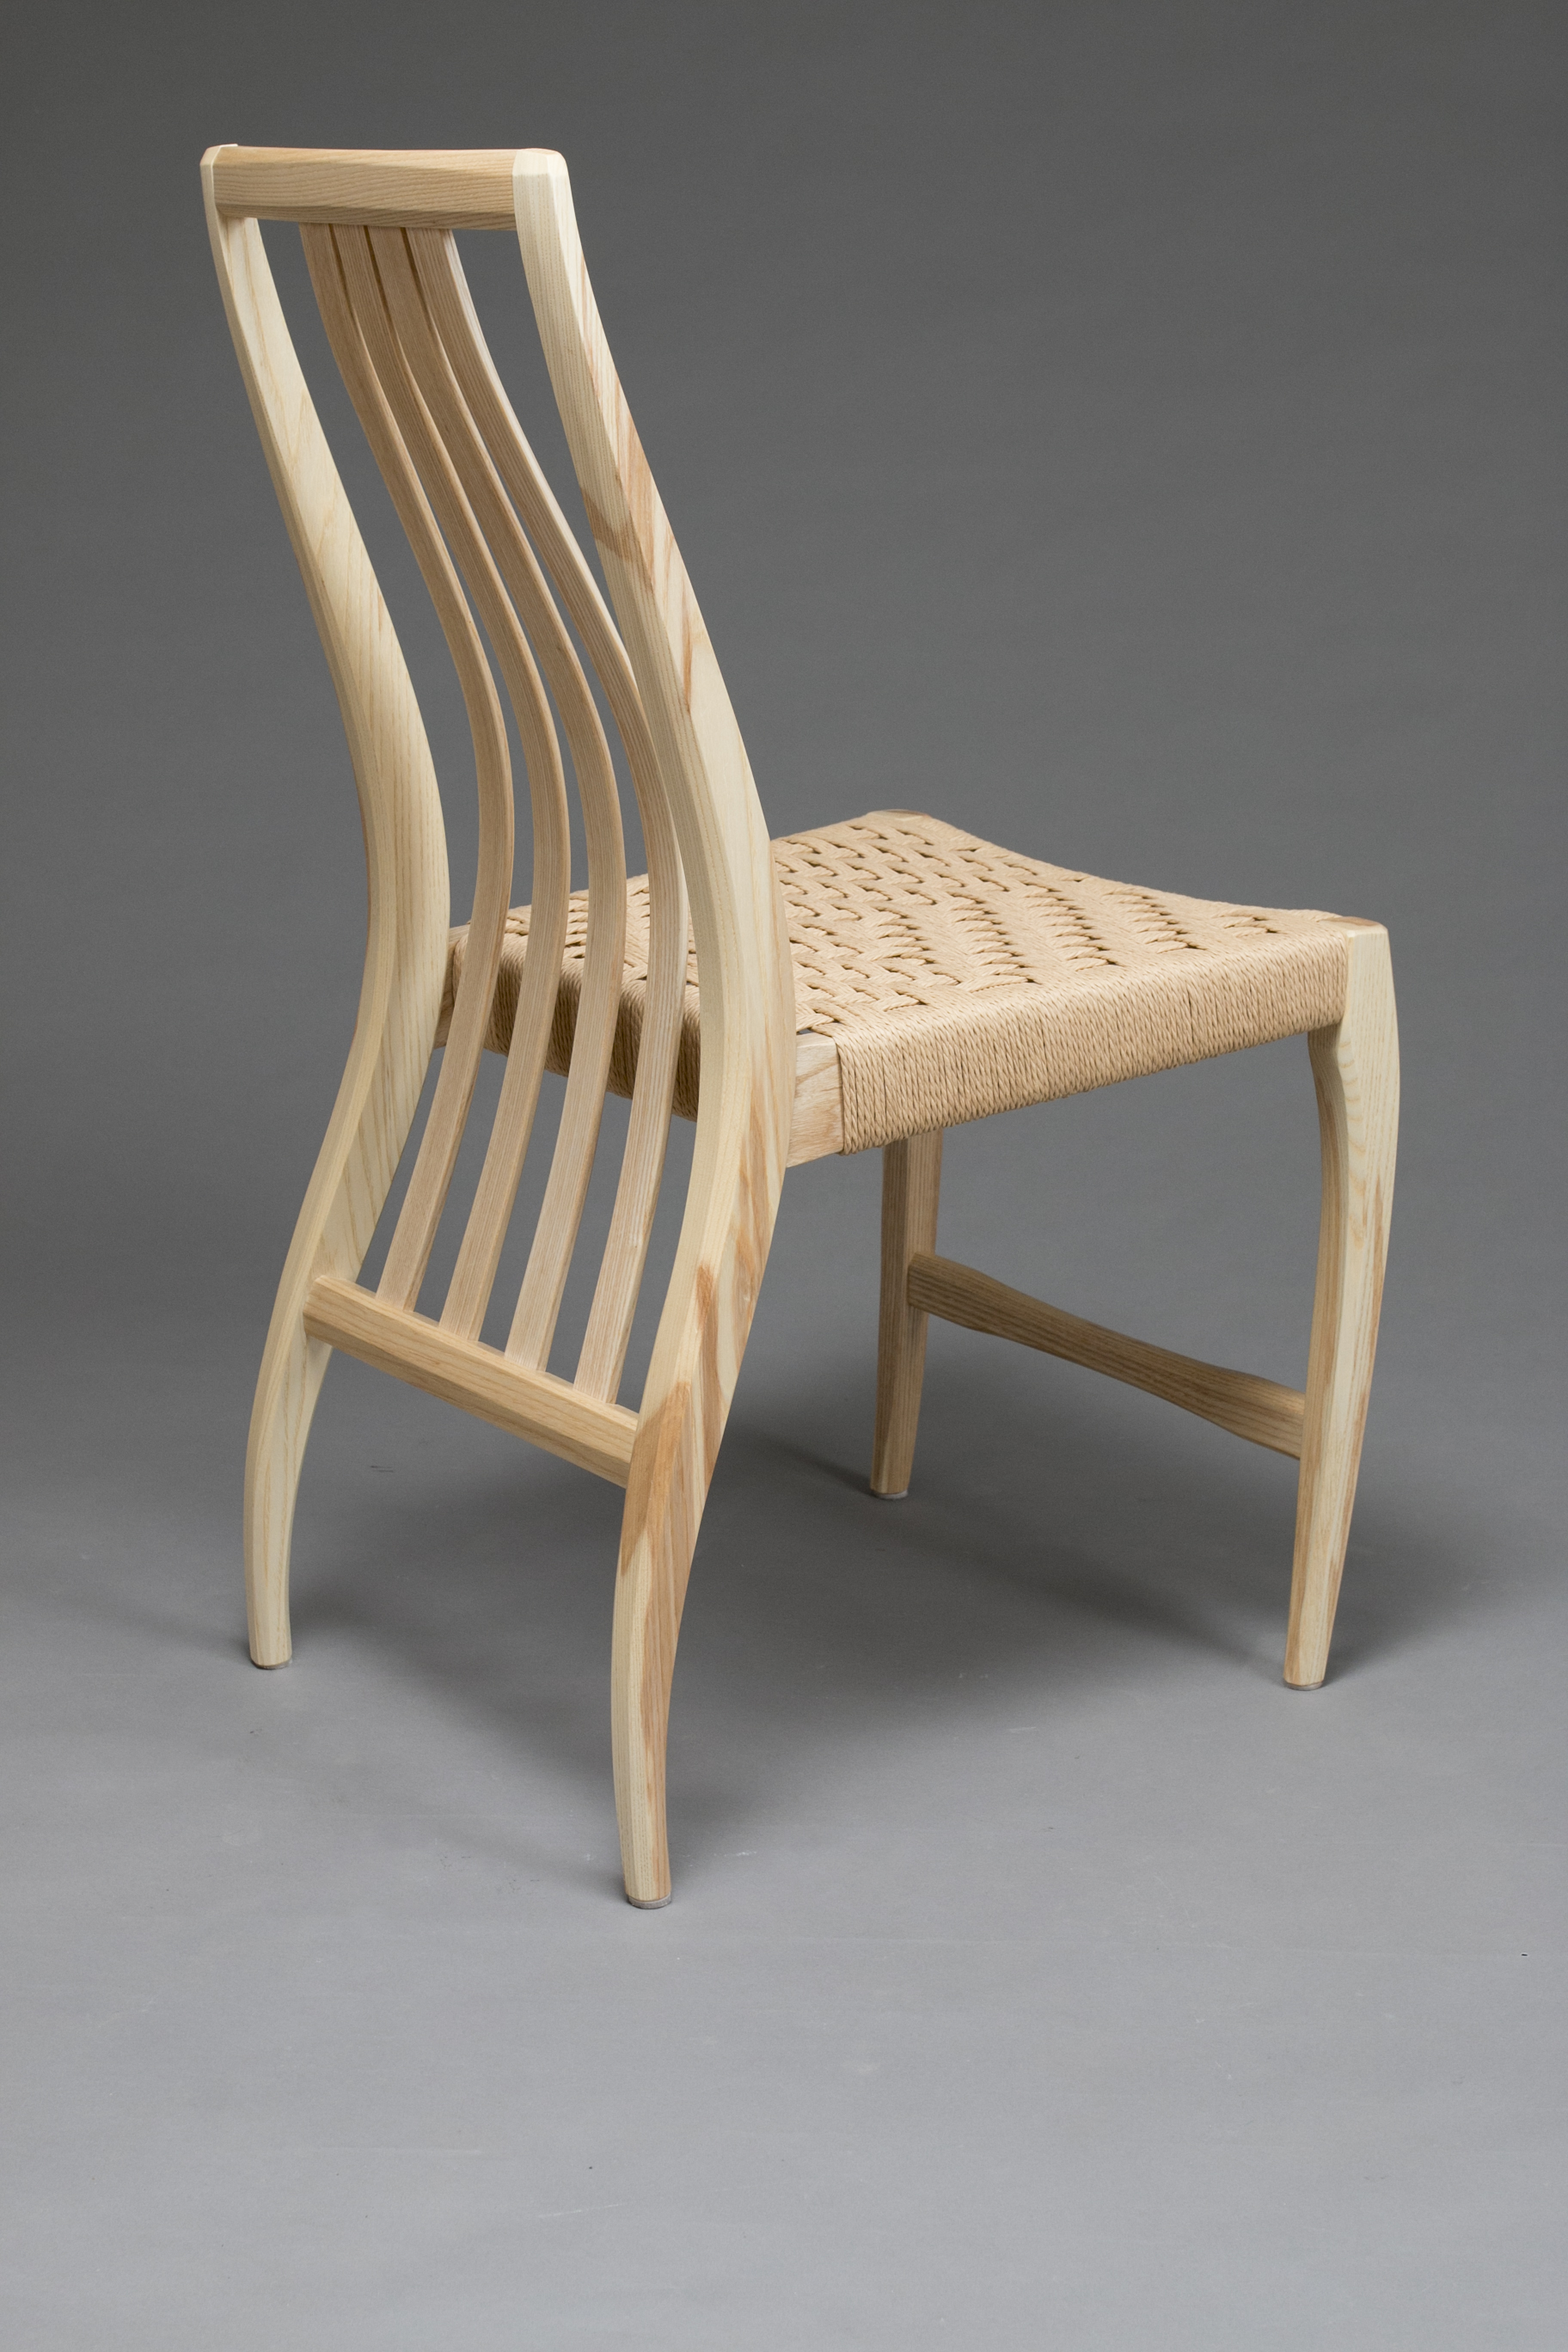 Helen Hamilton - Chair Design